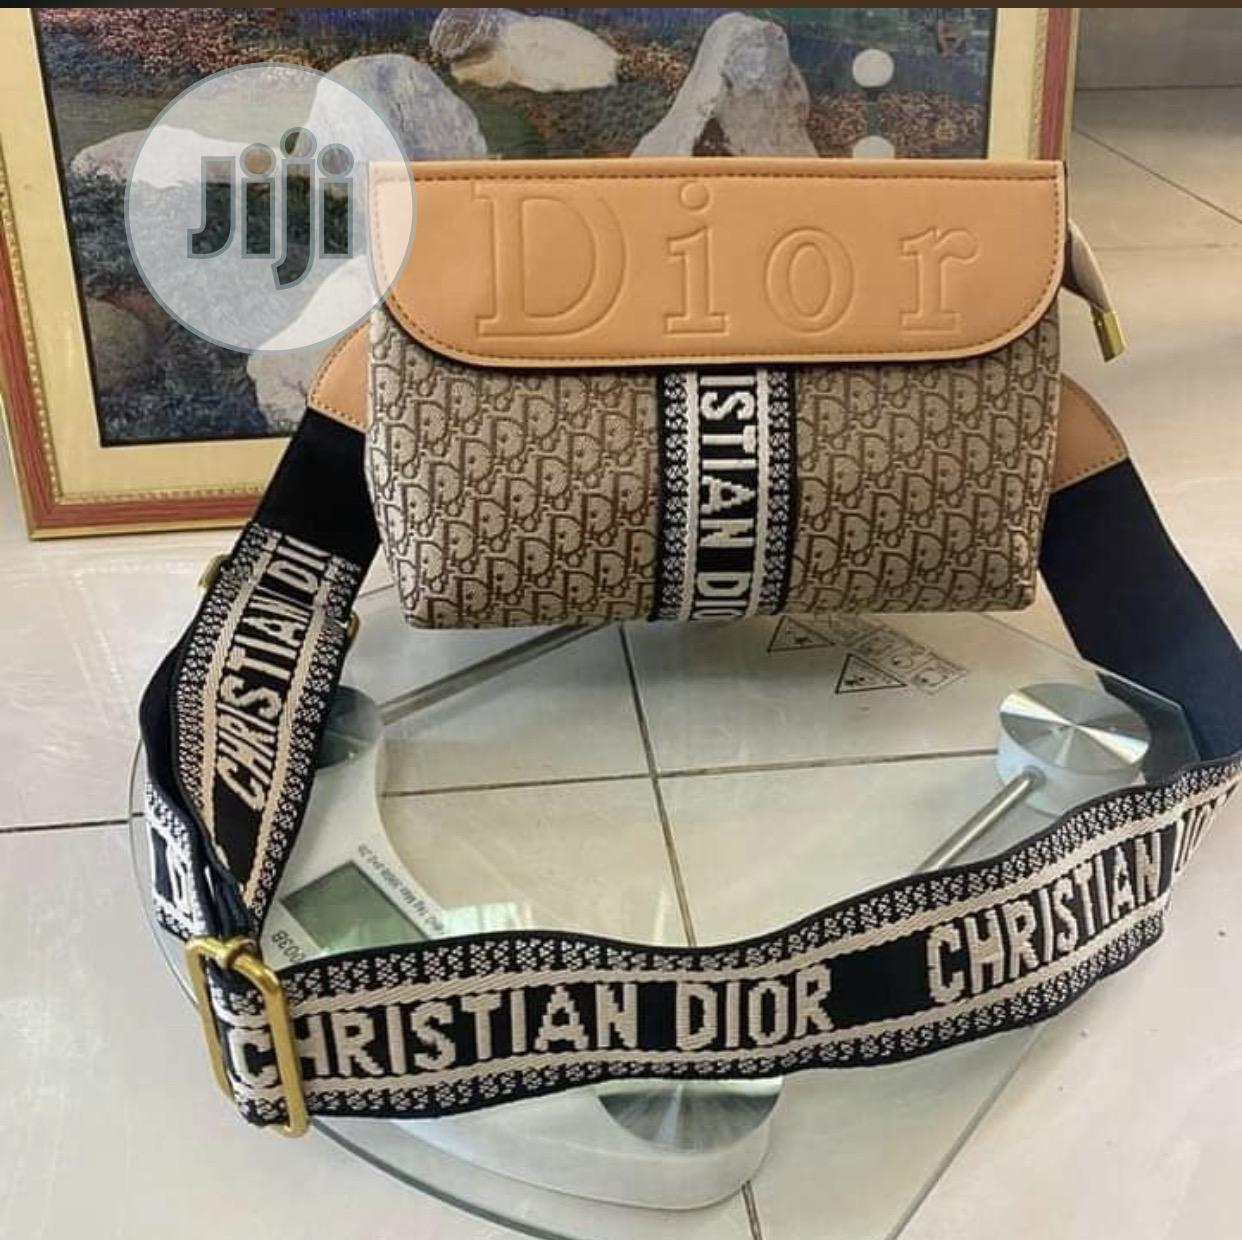 Dior Side Shoulder Bag Available as Seen Order Yours Now